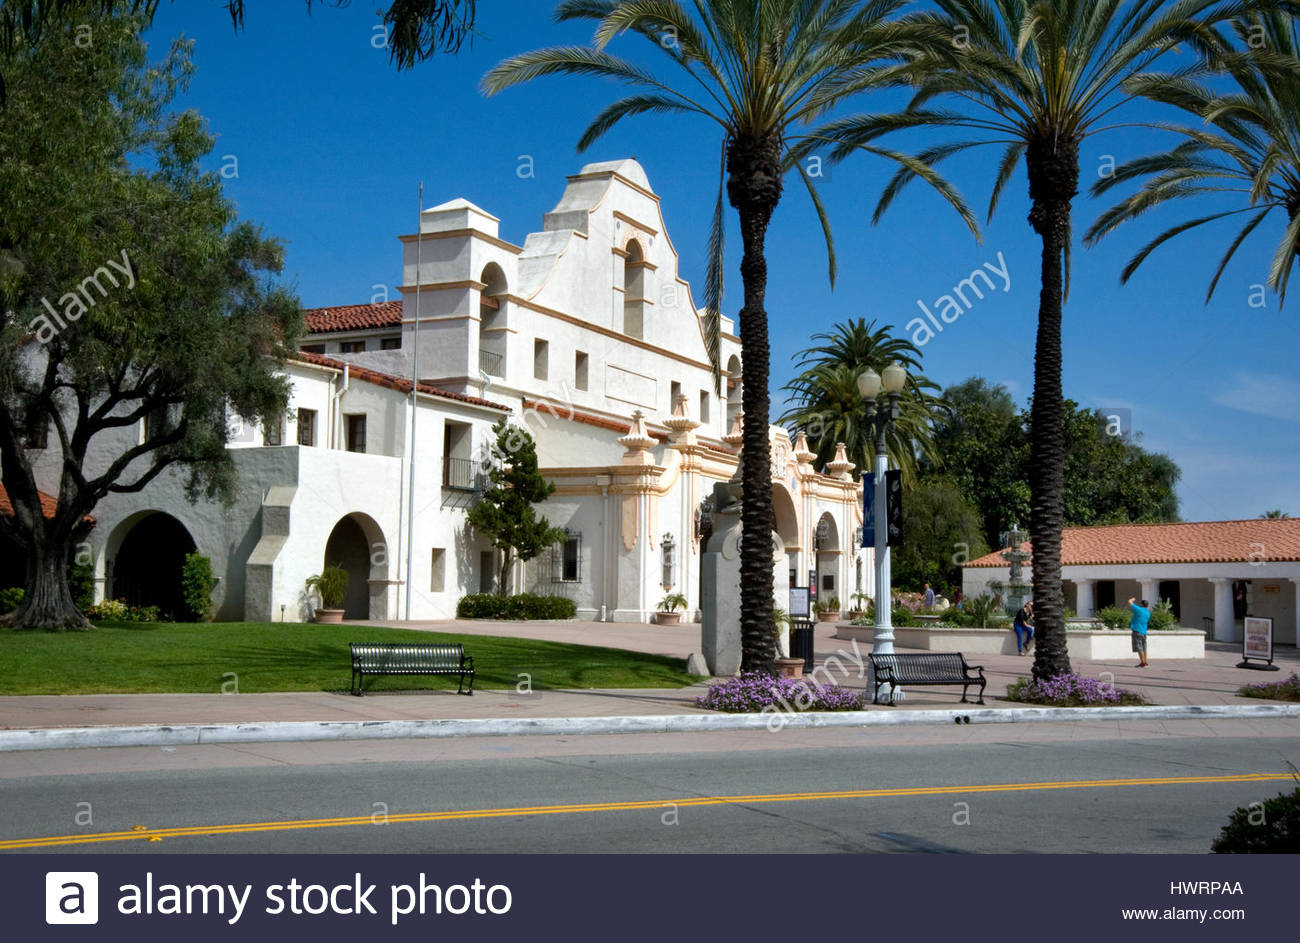 The Mission Play Theater built in 1922 in San Gabriel, California Stock Photo